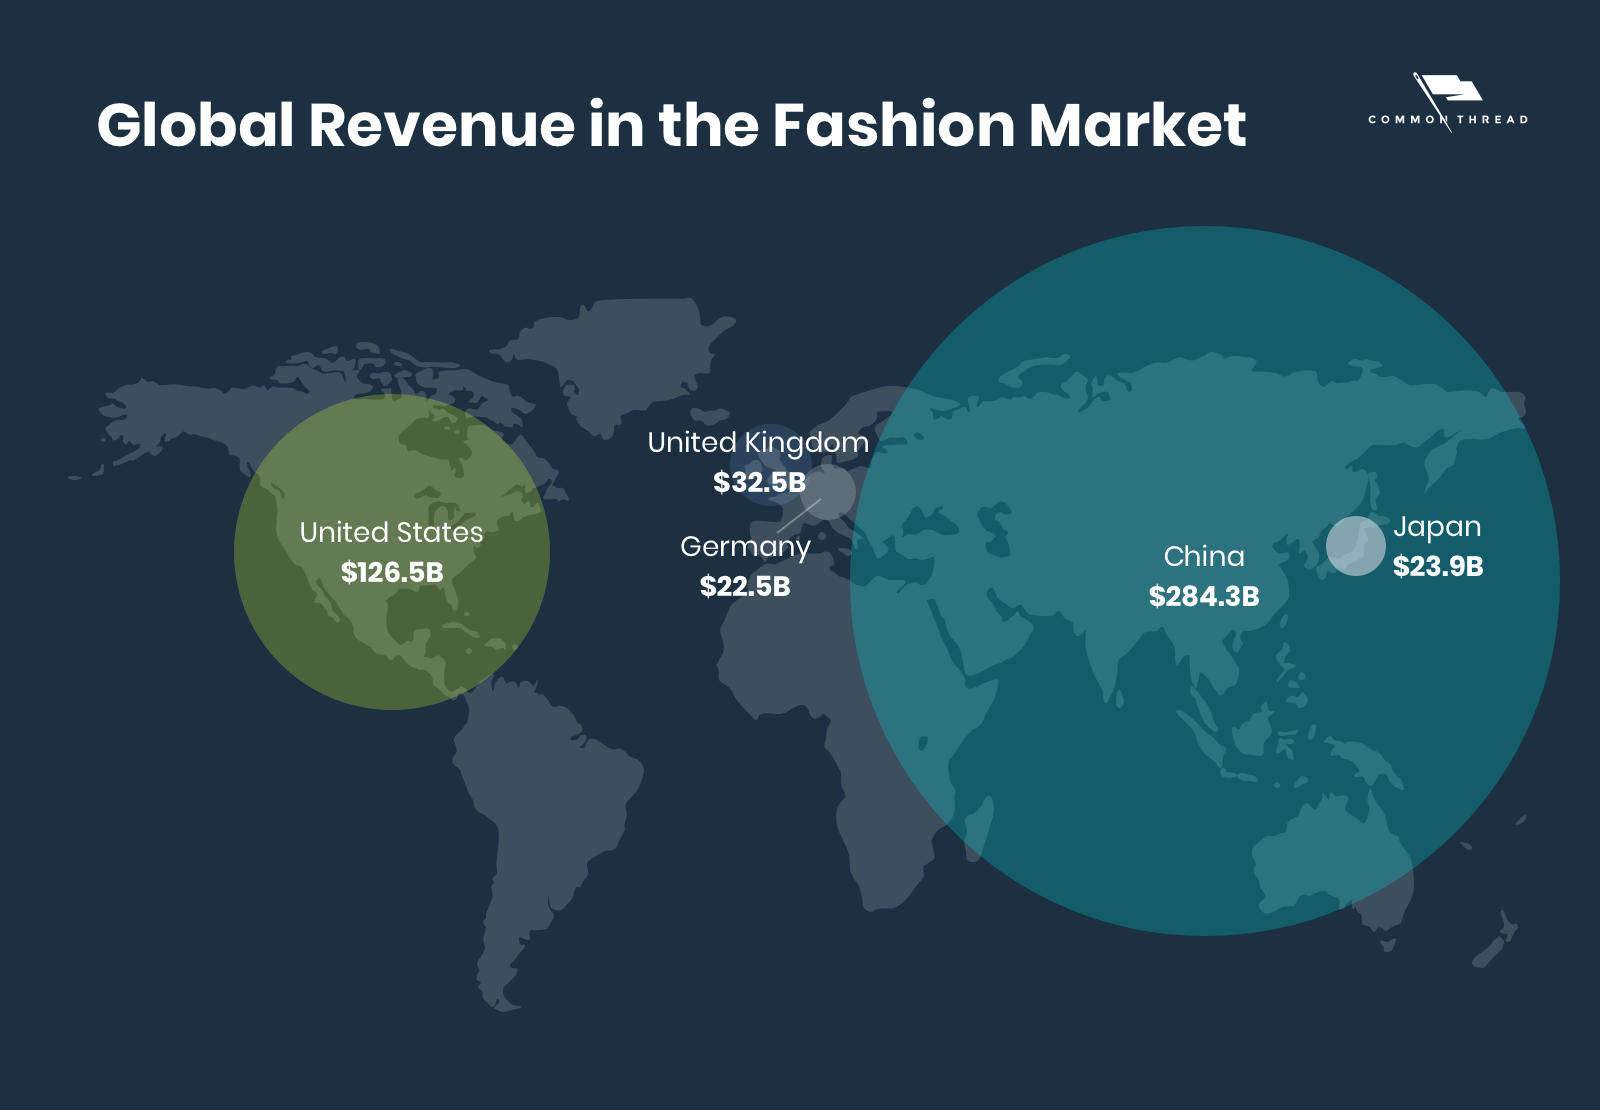 Global revenue in the fashion market